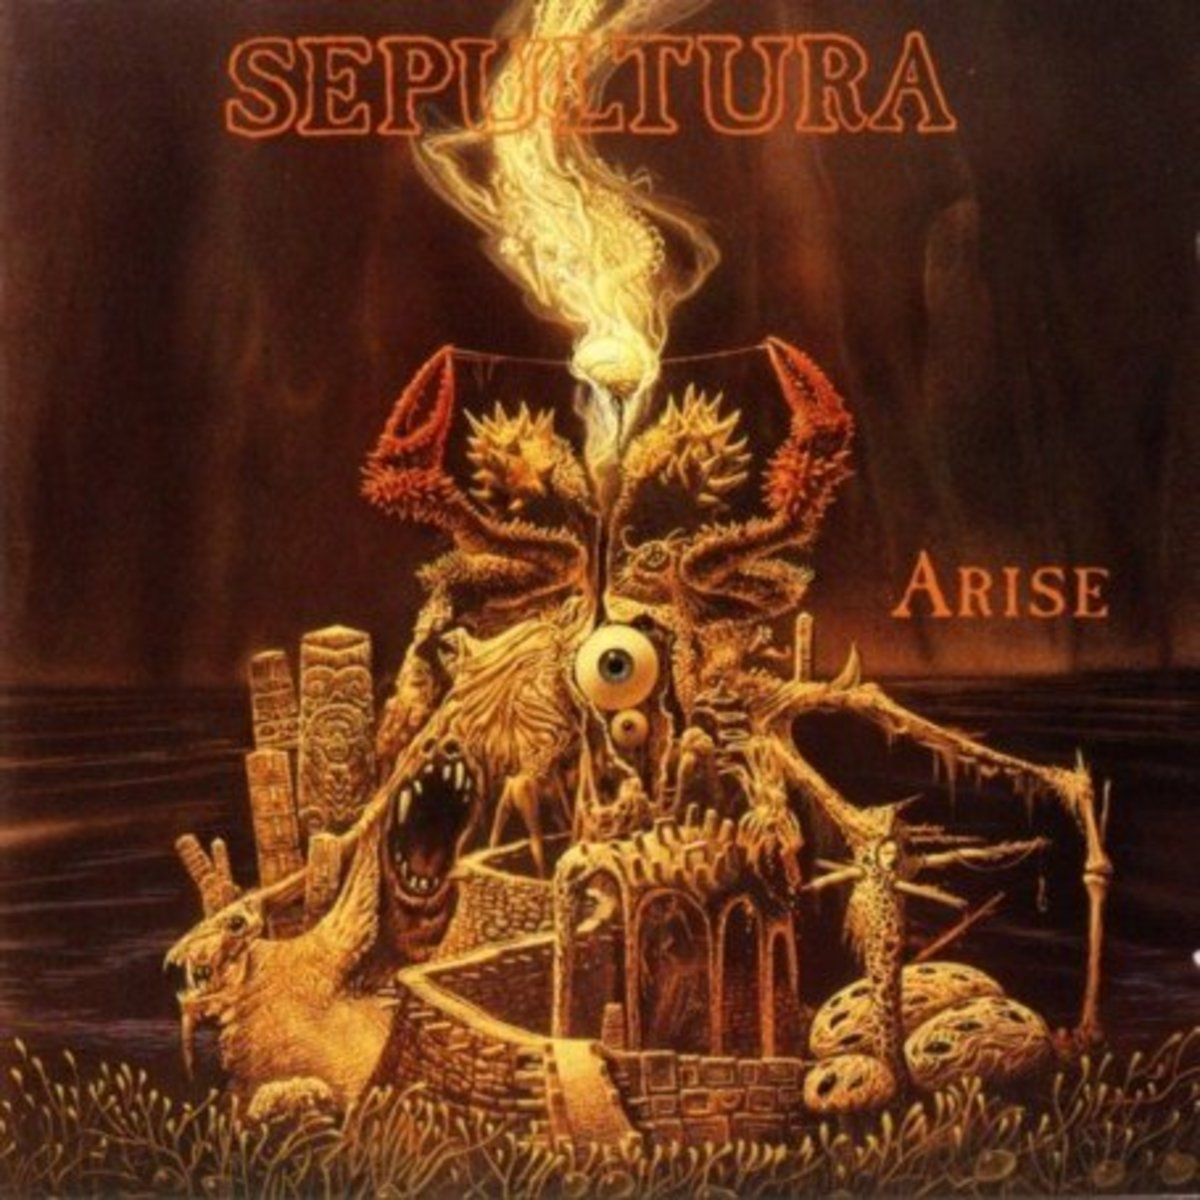 Sepultura, ARISE album cover